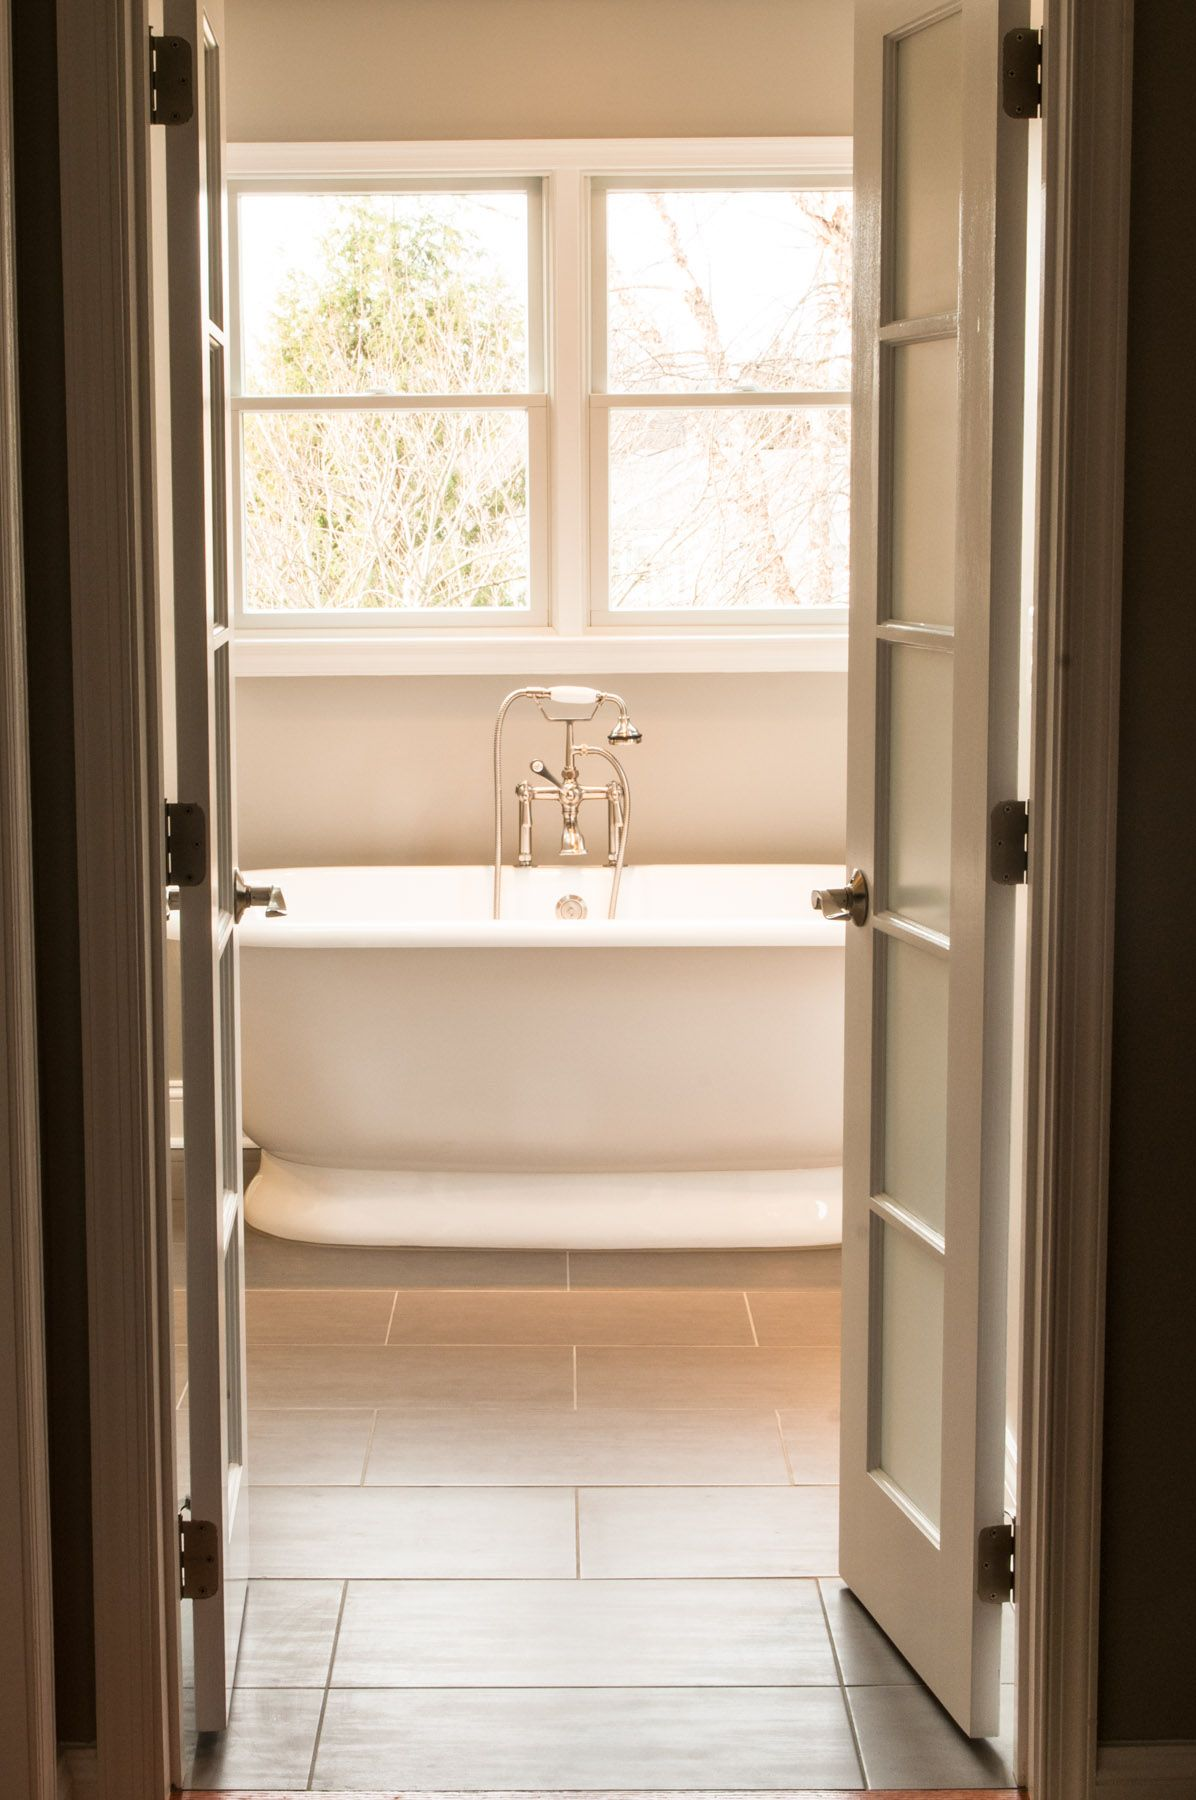 Peekaboo Doors  Someday Home  Pinterest  Bathroom